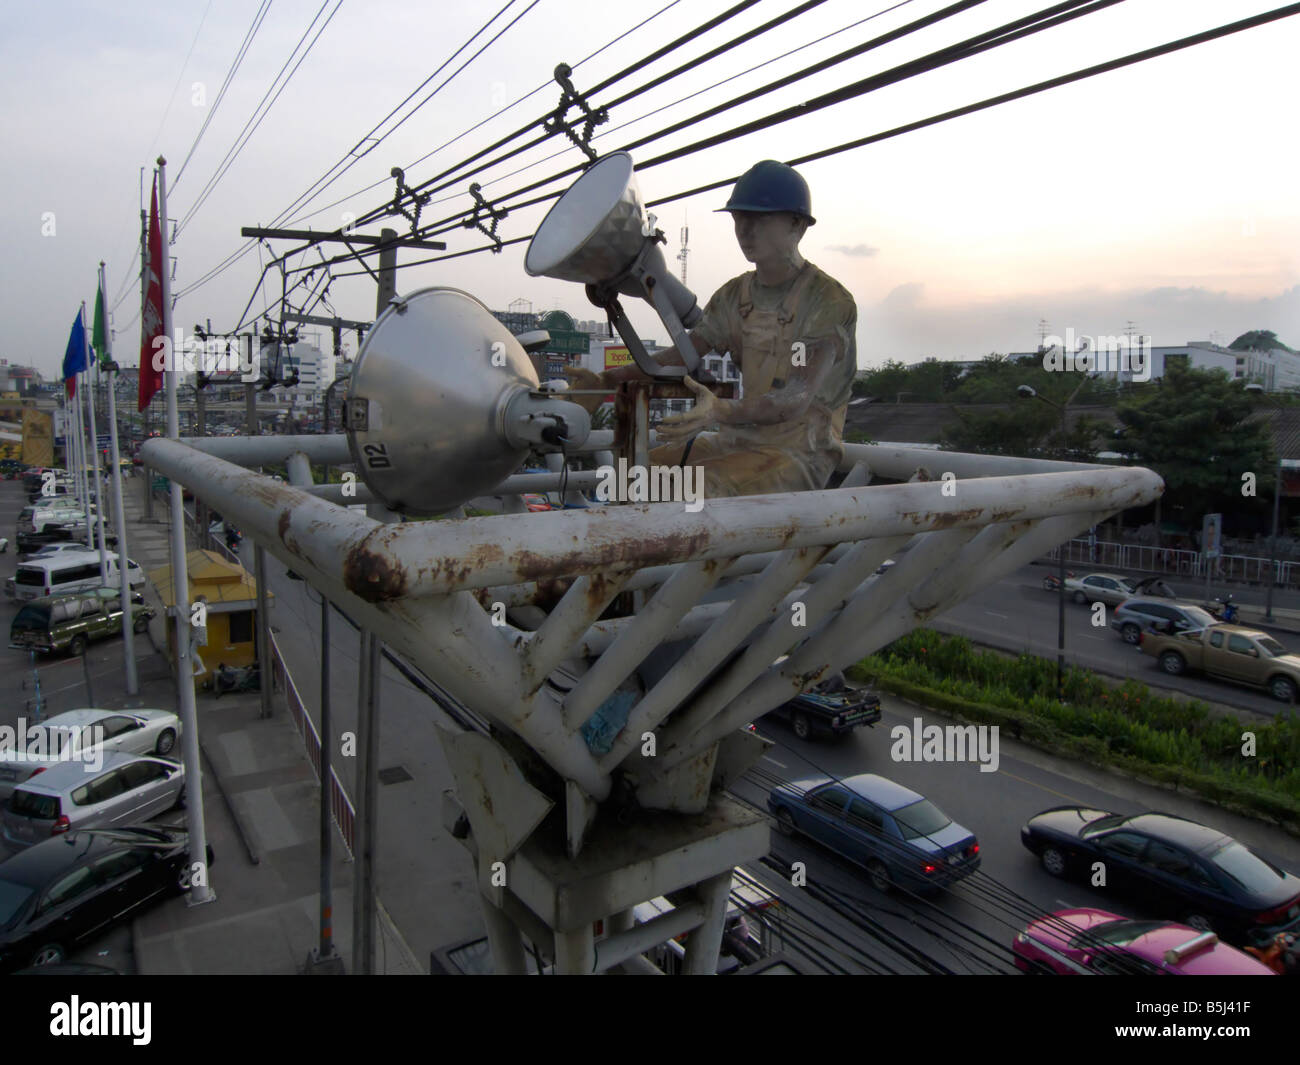 A statue of a worker sits atop a lighting tower while the statue of a girl climbs a flagpole in the background. - Stock Image